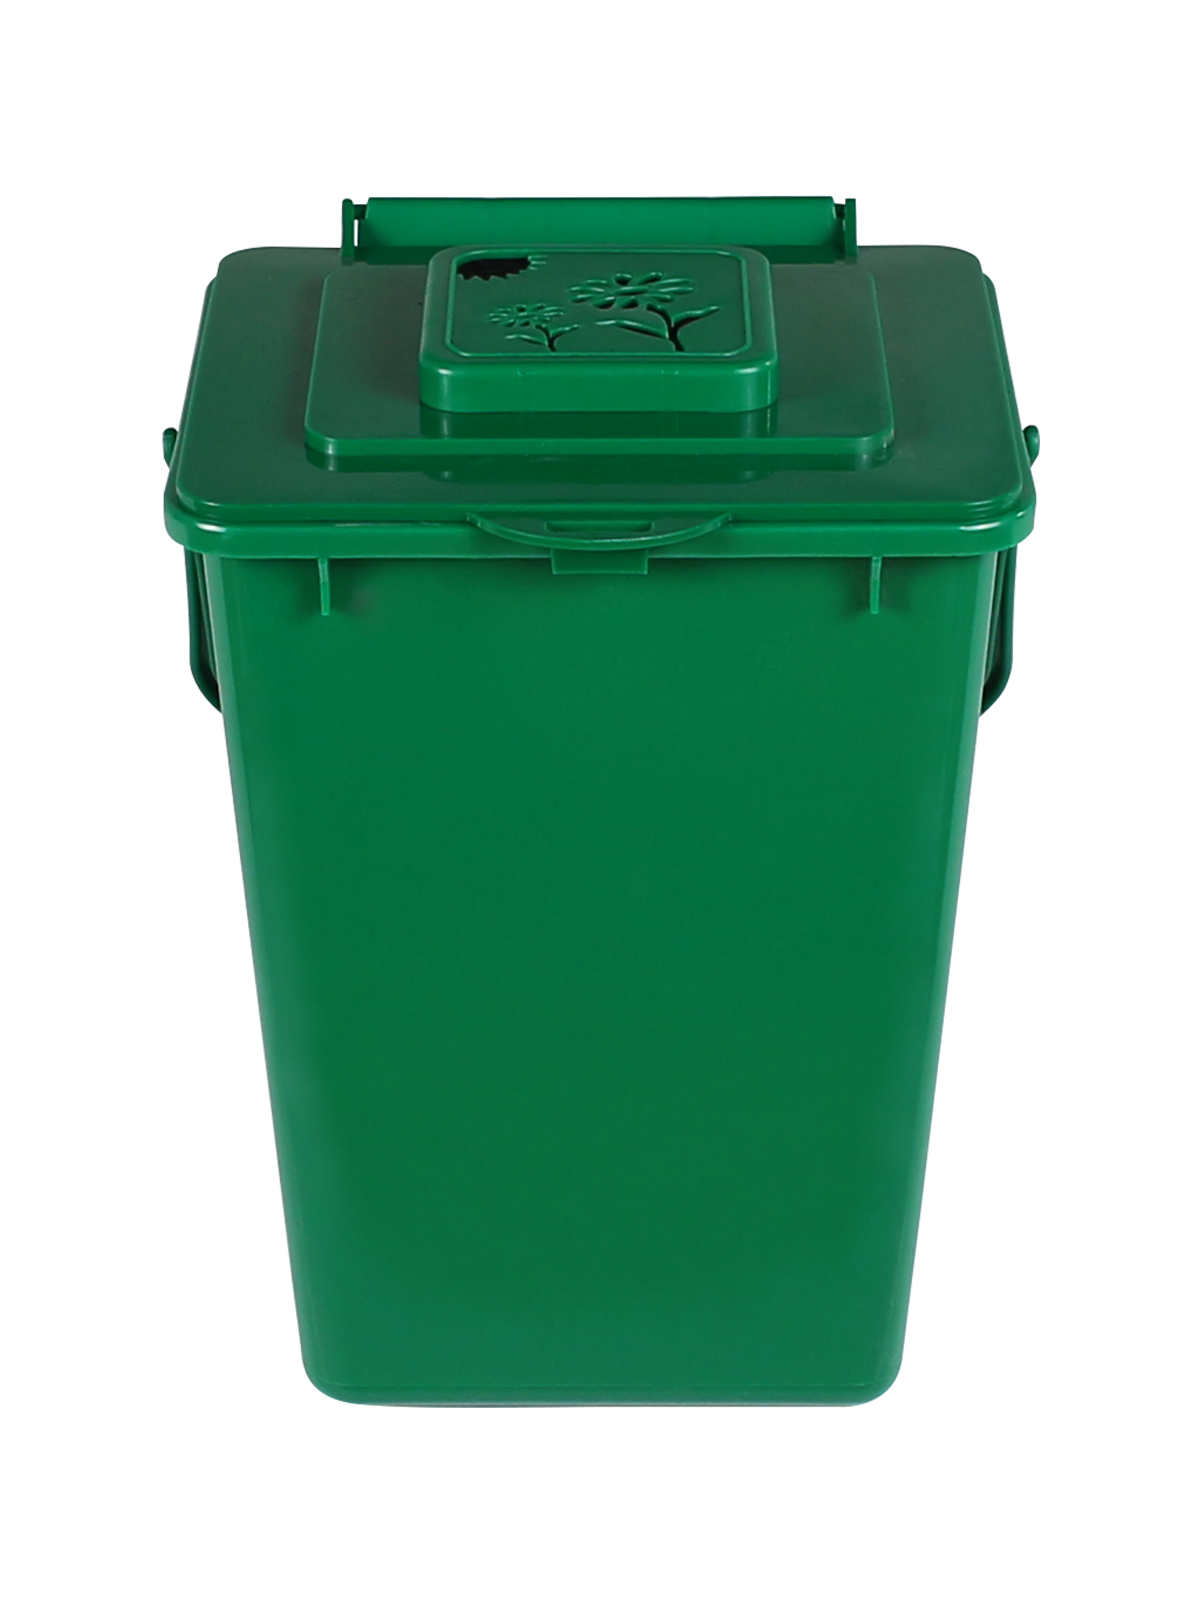 KITCHEN COMPOSTER - Single - Unit - 2 - Vented Lift - Compost Green